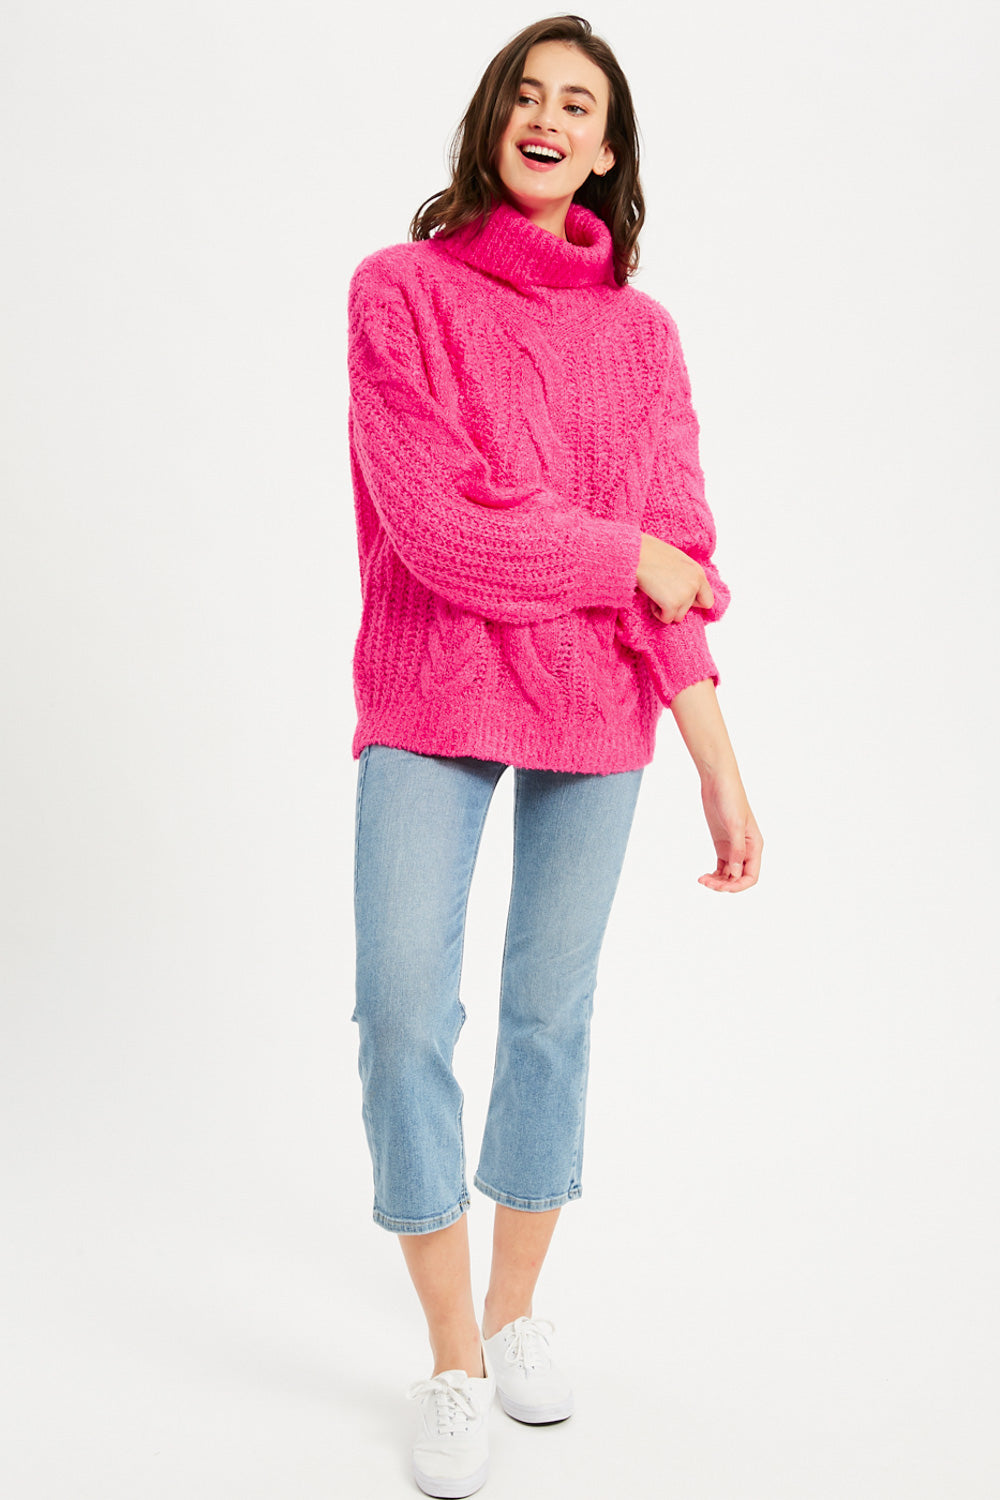 Chunky Cable Knit Turtleneck Pullover - Hot Pink